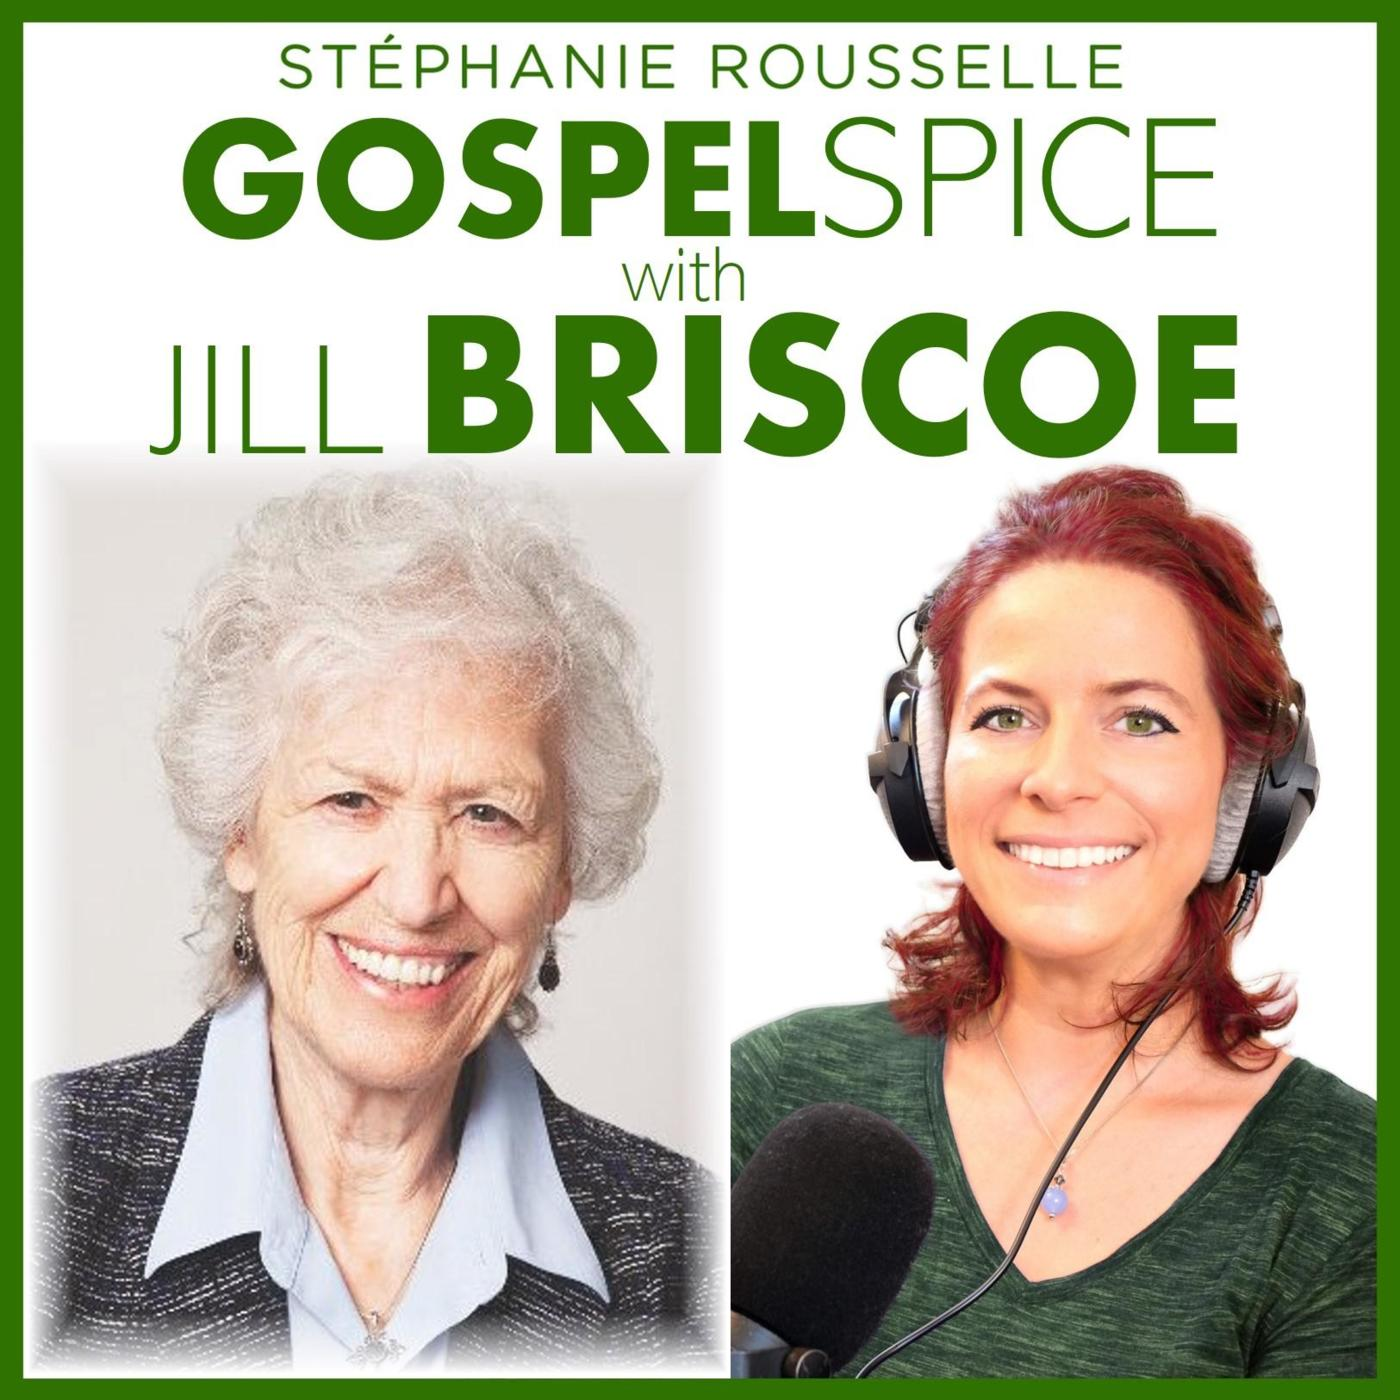 Overcoming worry with faith: Jill Briscoe's life lessons